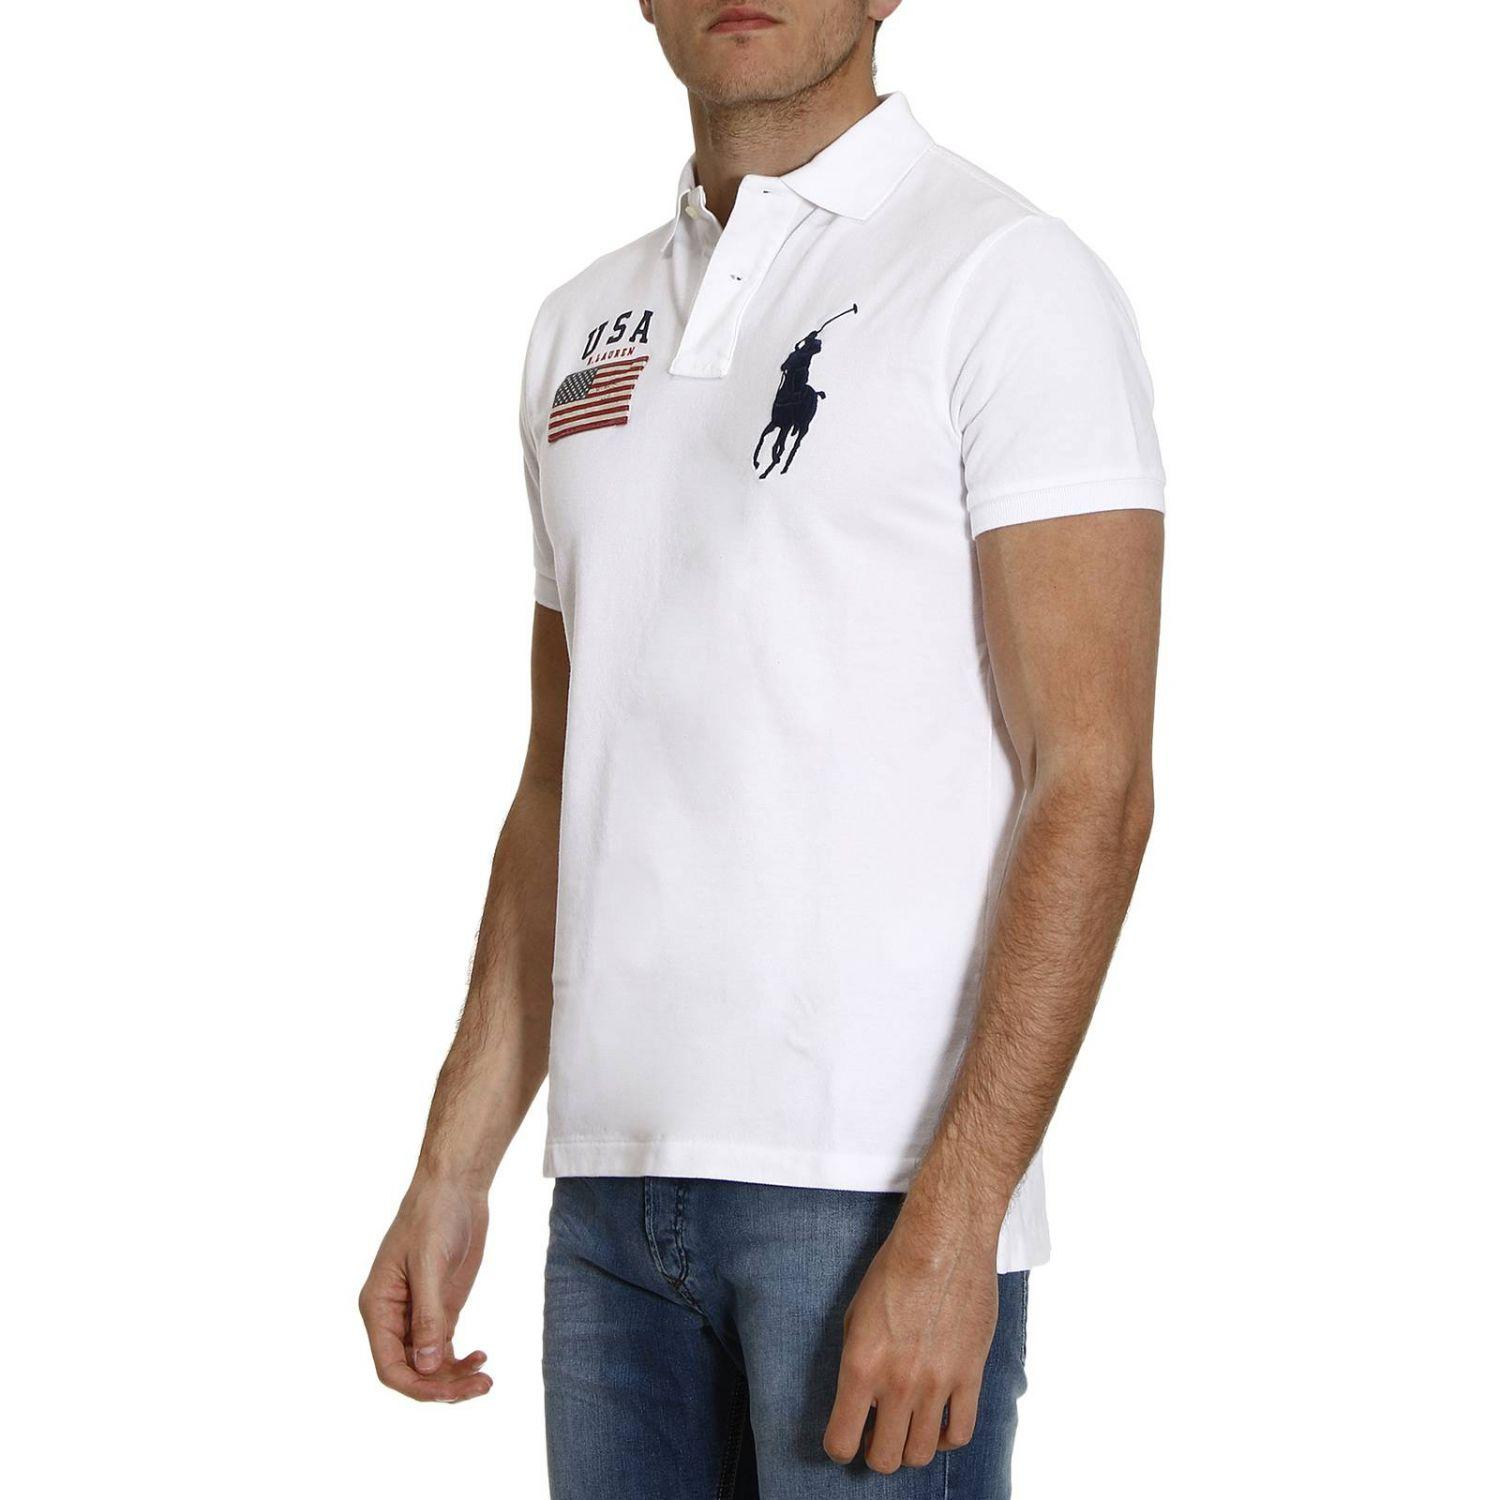 lyst polo ralph lauren t shirt men in white for men. Black Bedroom Furniture Sets. Home Design Ideas